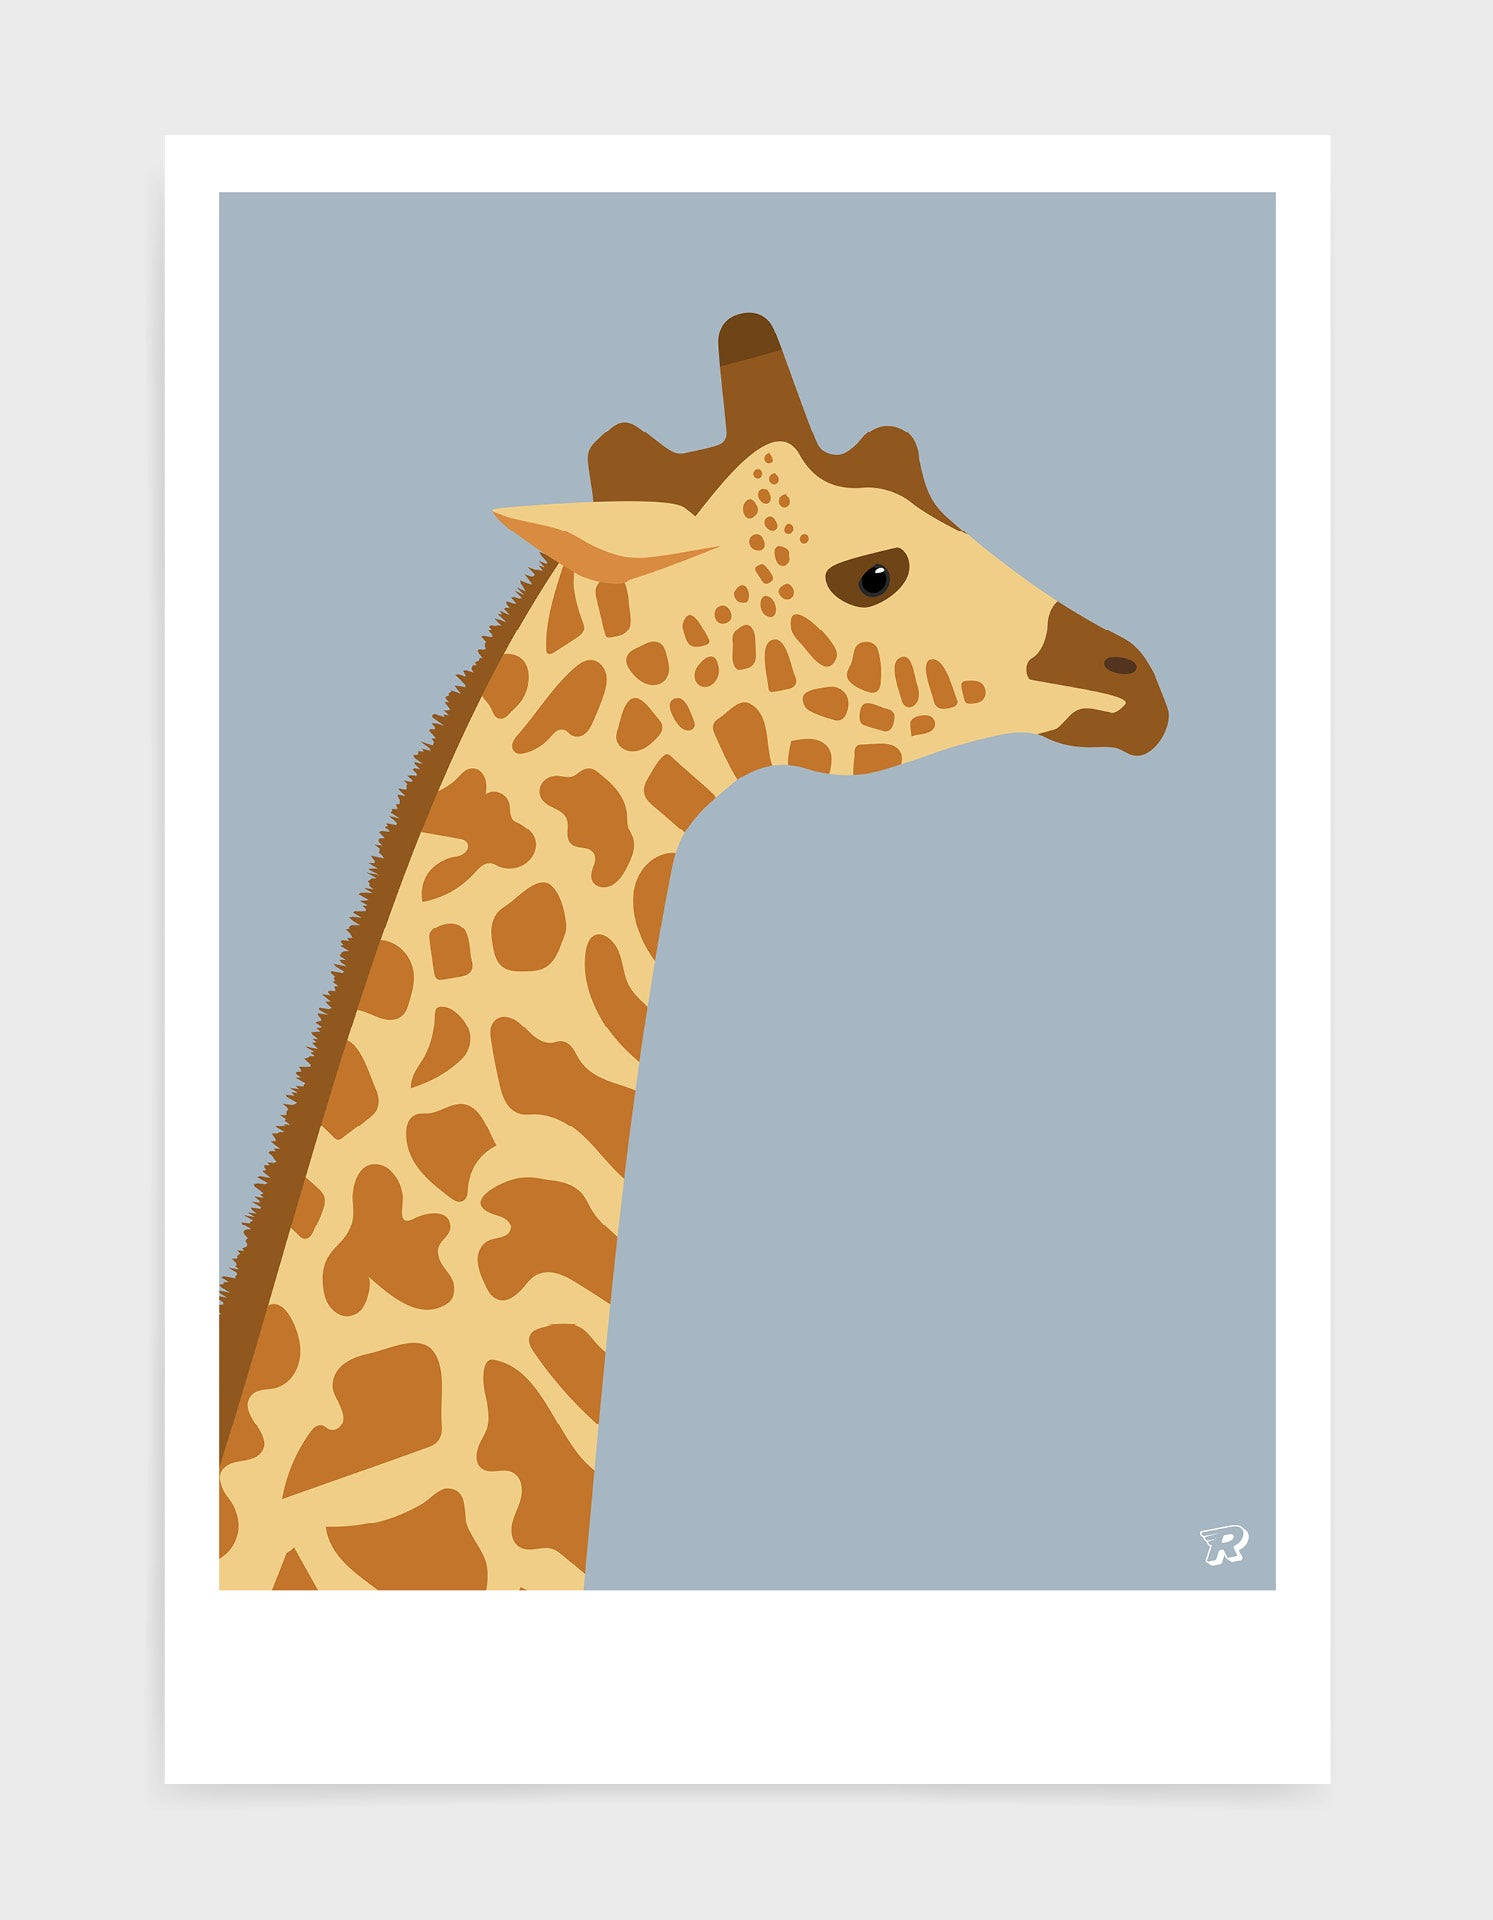 art print of a giraffe in profile against a light grey background